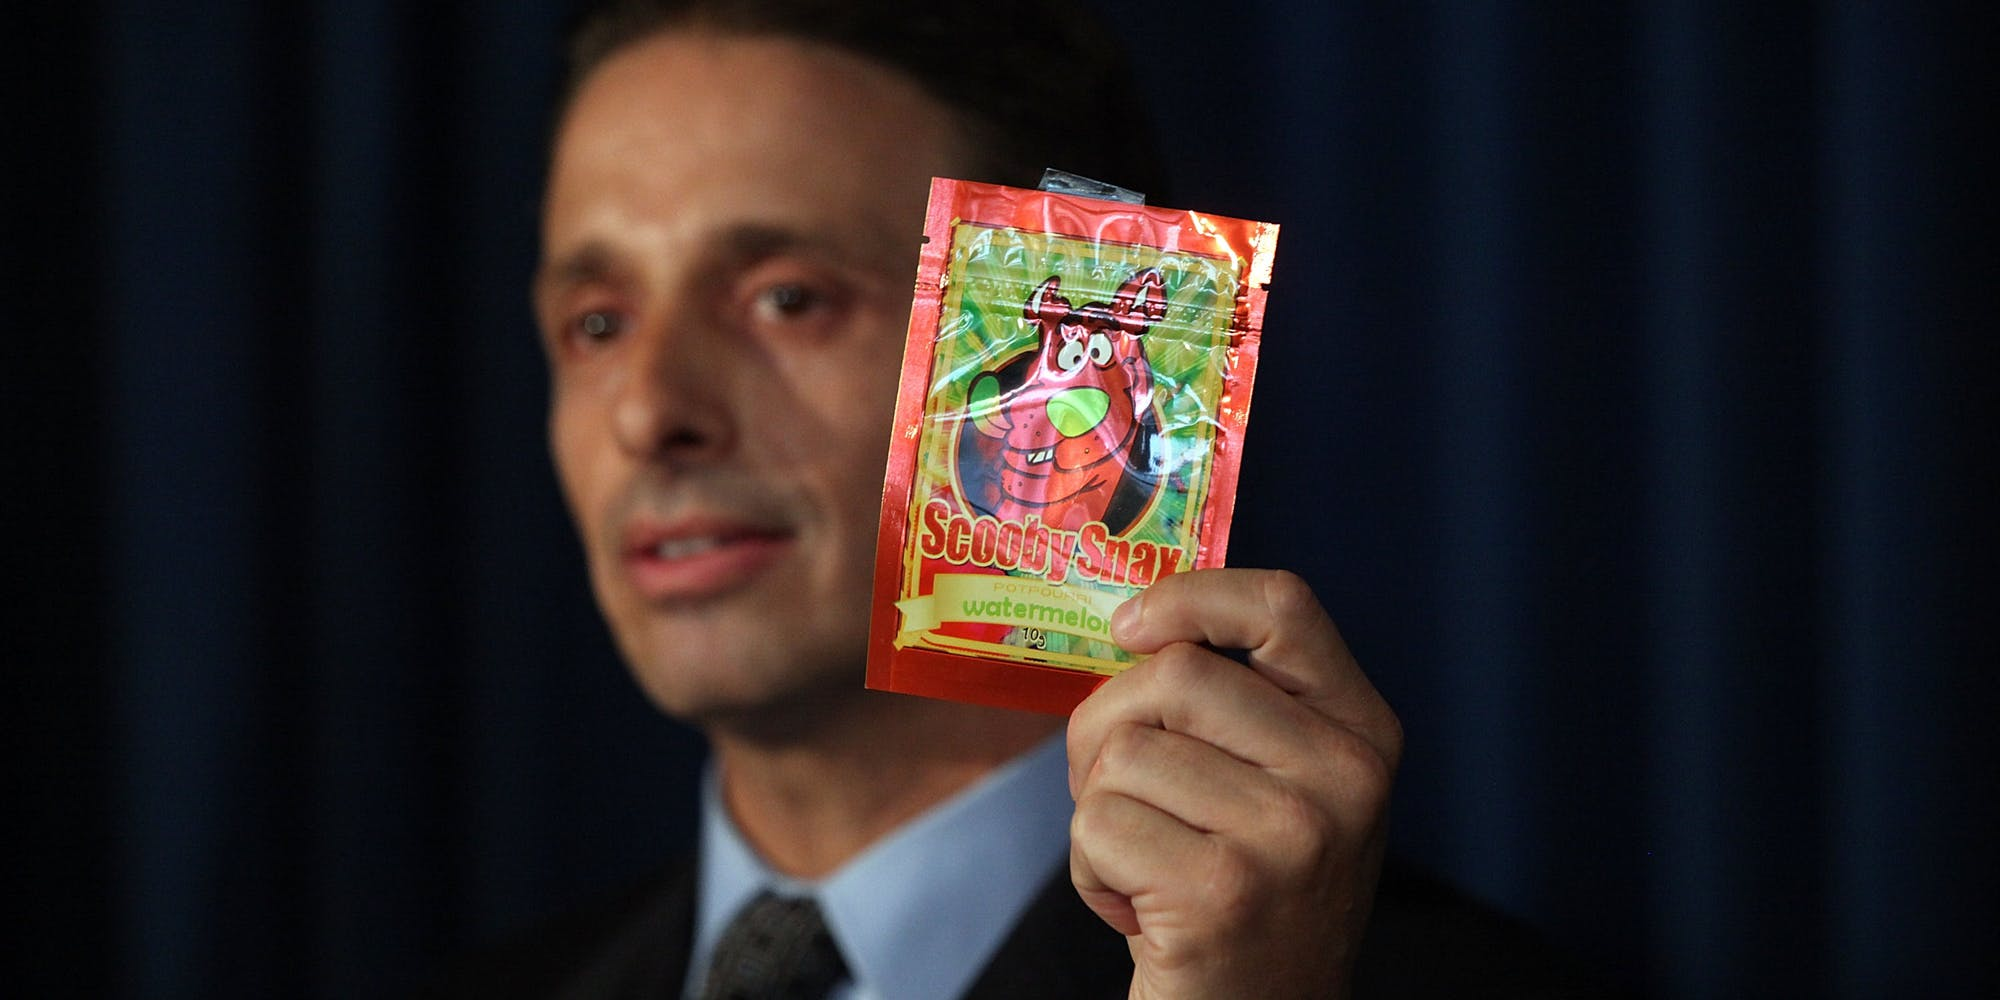 Kieth Kruskall with the Drug Enforcement Administration, holds up a package of synthetic marijuana